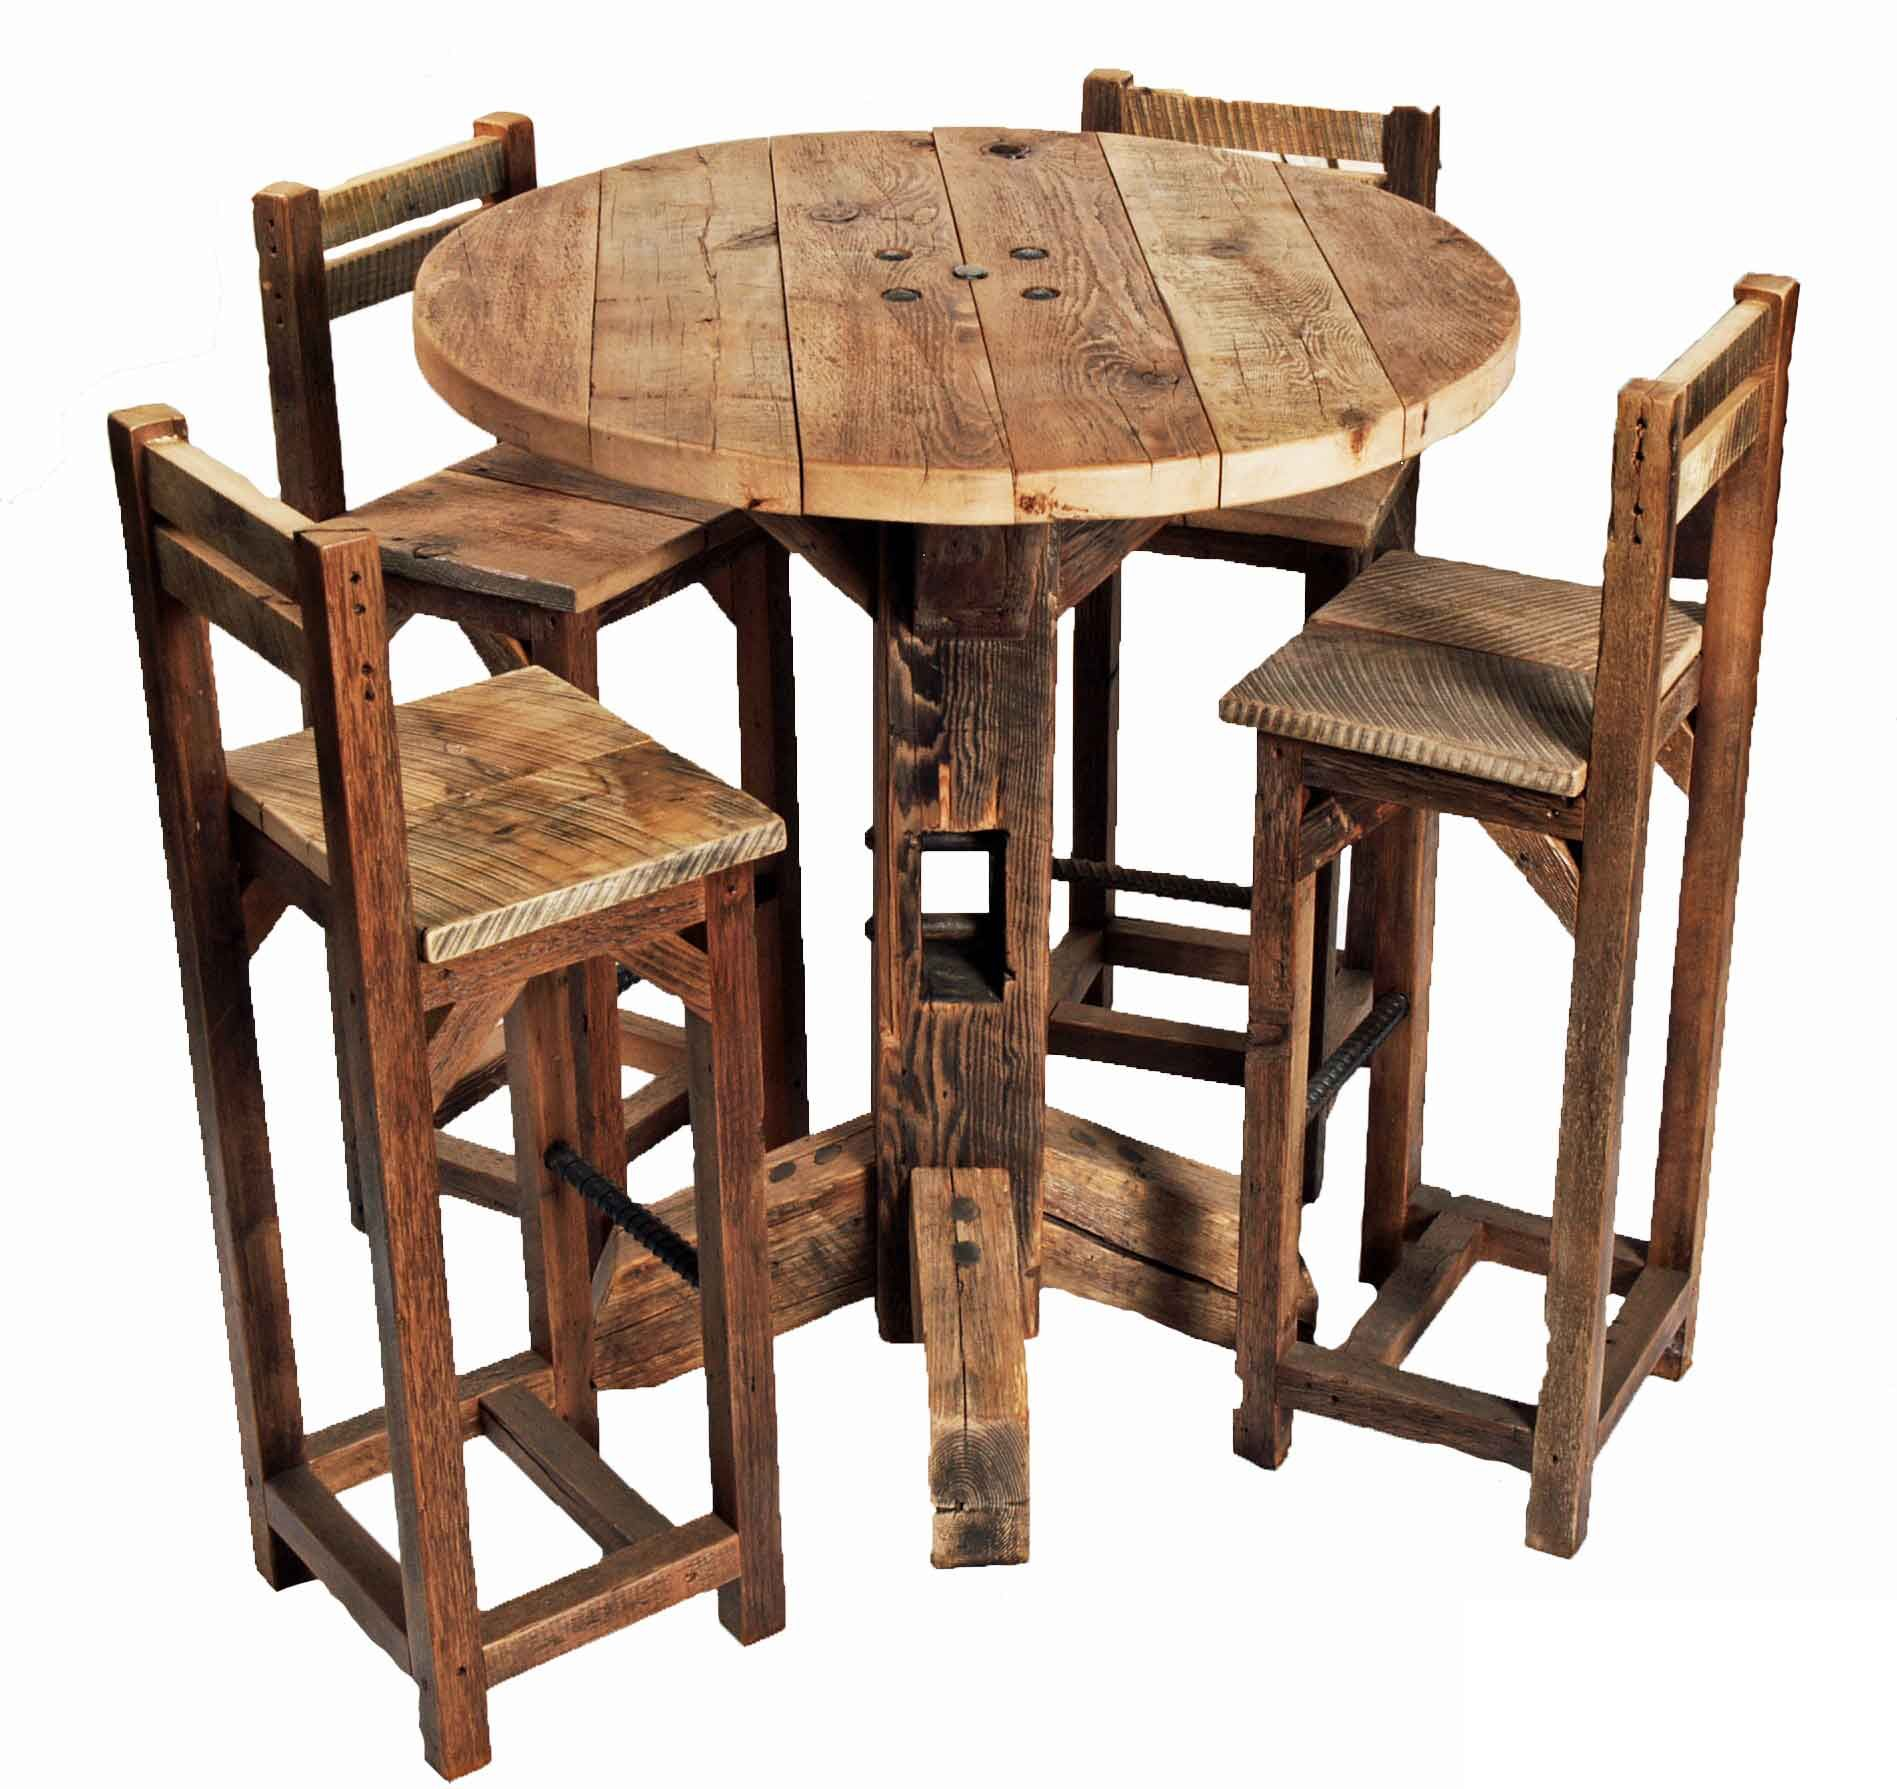 Furniture Old Rustic Small High Round Top Kitchen Table And Chair With High Legs And Back Ideas